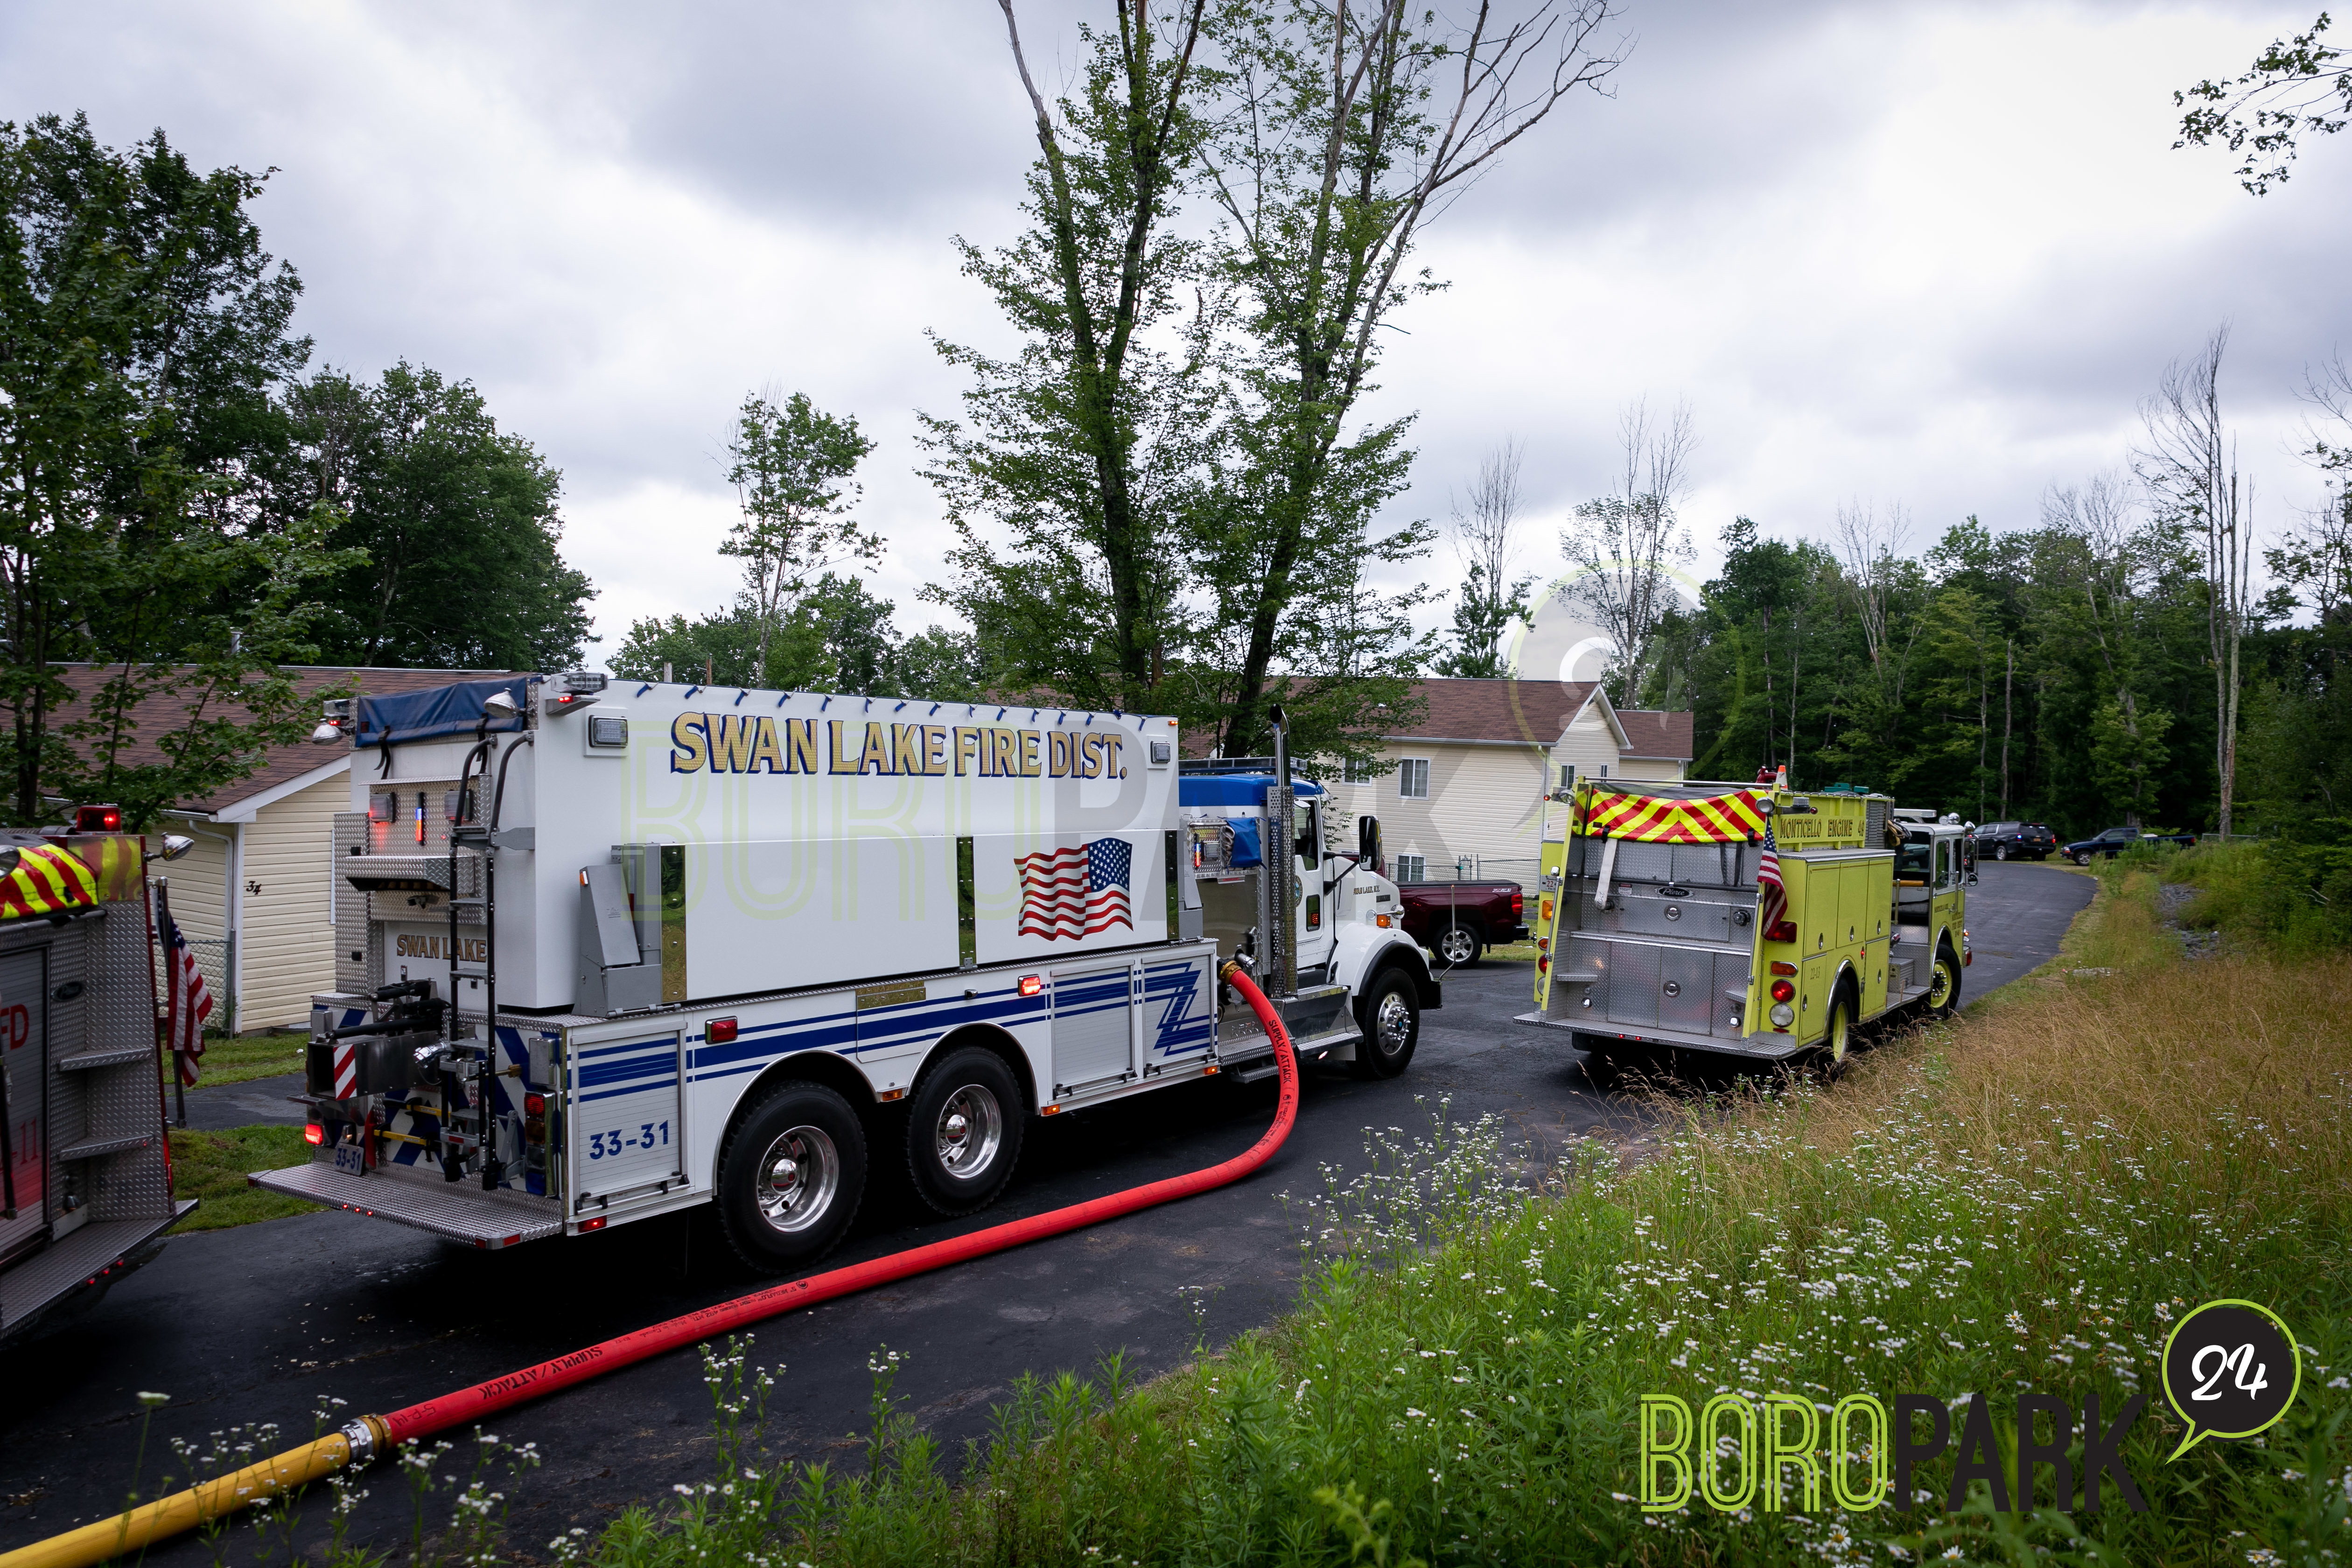 Firefighters Battle Shed on Fire in Garden Hills – Boro Park 24 on amherst map, charlottesville map, watertown map, greater nyc map, nyc watershed map, berkshires map, abilene map, lafayette map, eastern wv map, brownsville map, bemus point map, morgantown map, lake charles map, wayne county ny snowmobile trail map, monticello map, the finger lakes map, eastern ny map, kaaterskill falls map, taconic mountains map, capital district map,